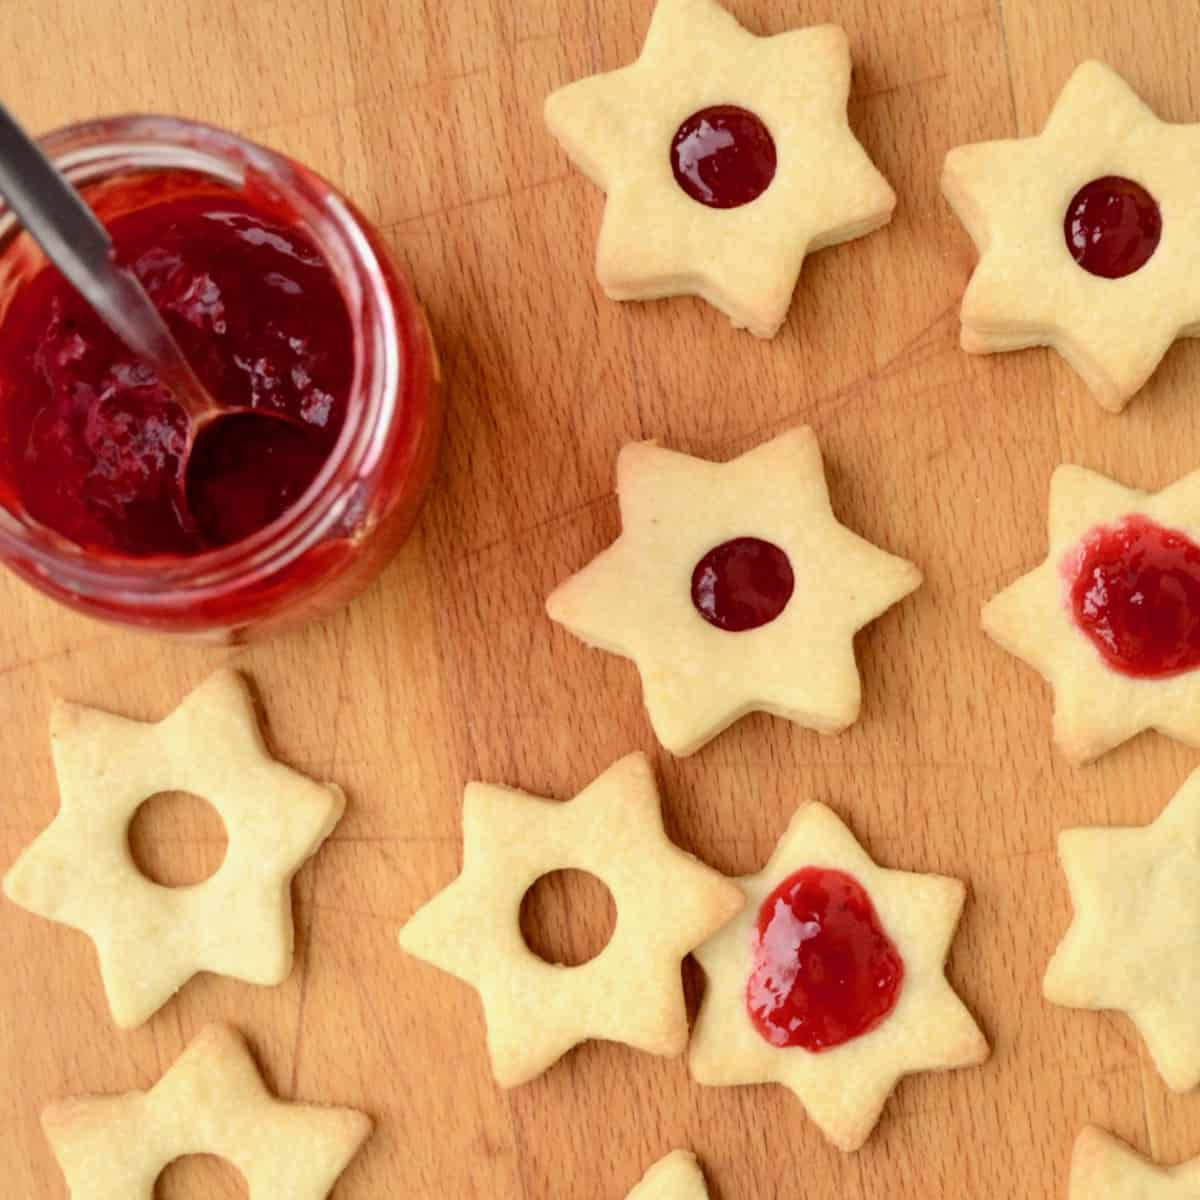 A jar of vibrant red jam. Pairs of cookies get stuck together with the jam.